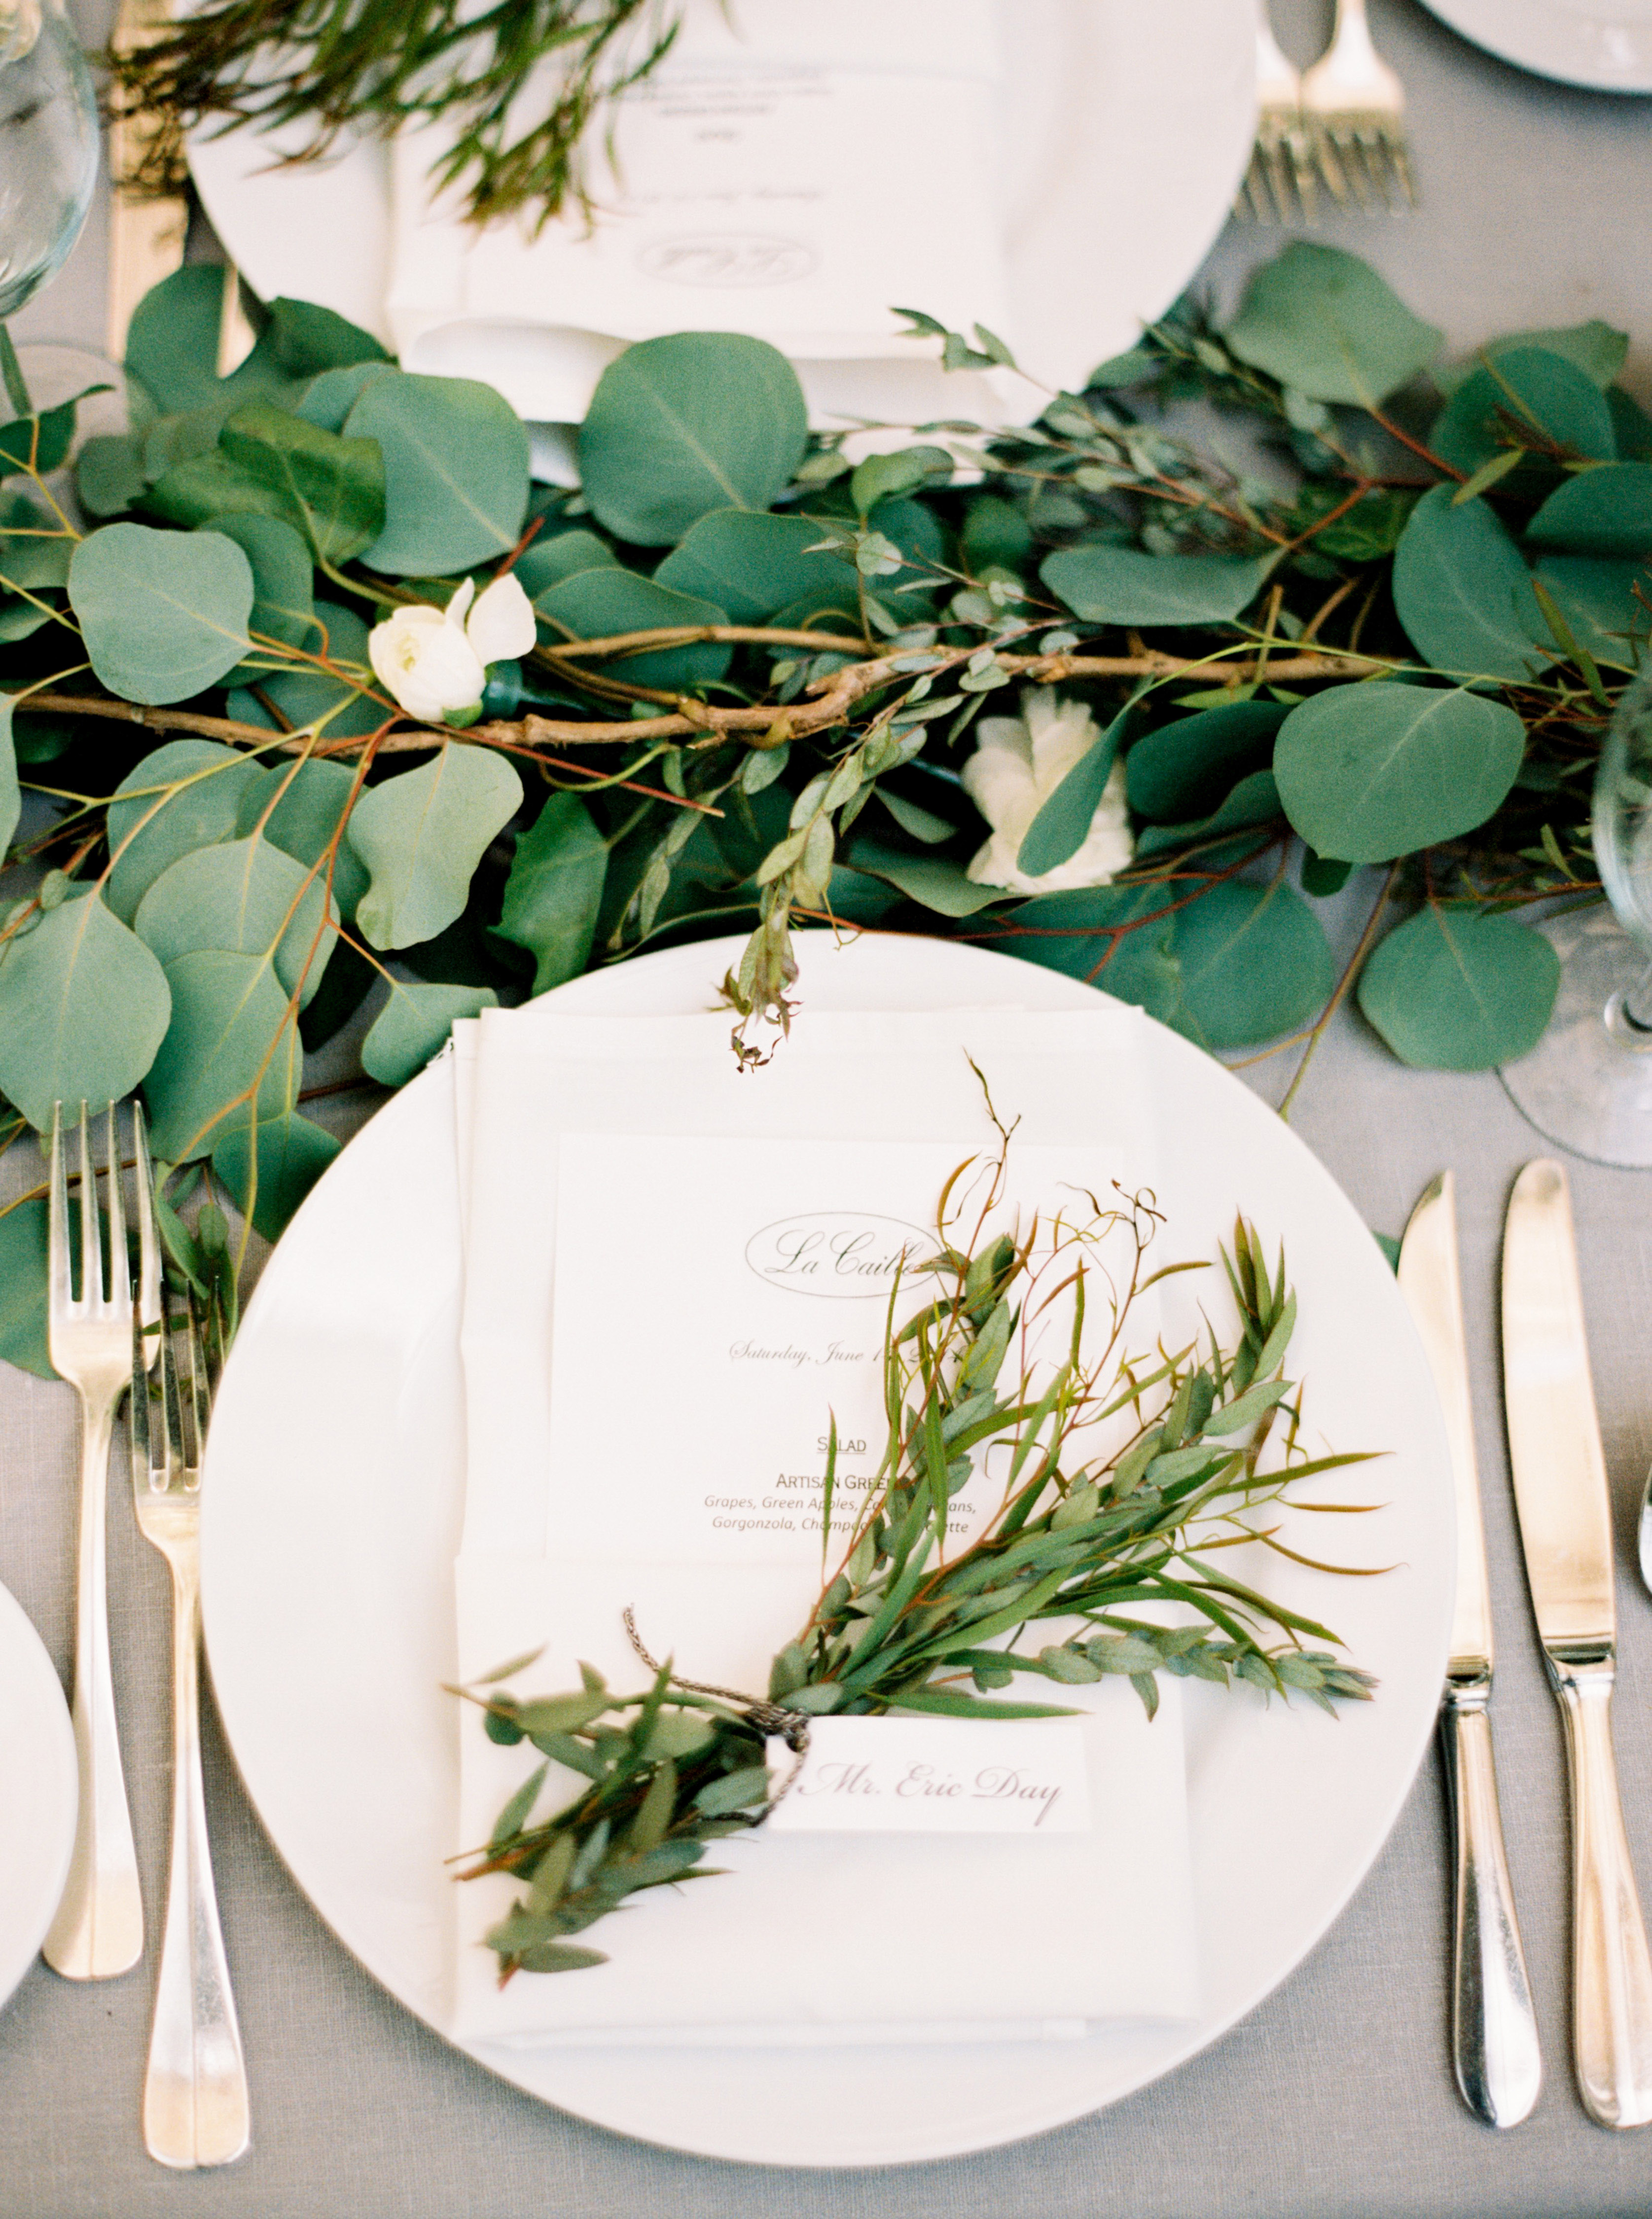 Herb and greenery wedding place setting elizabeth anne for Wedding greenery ideas